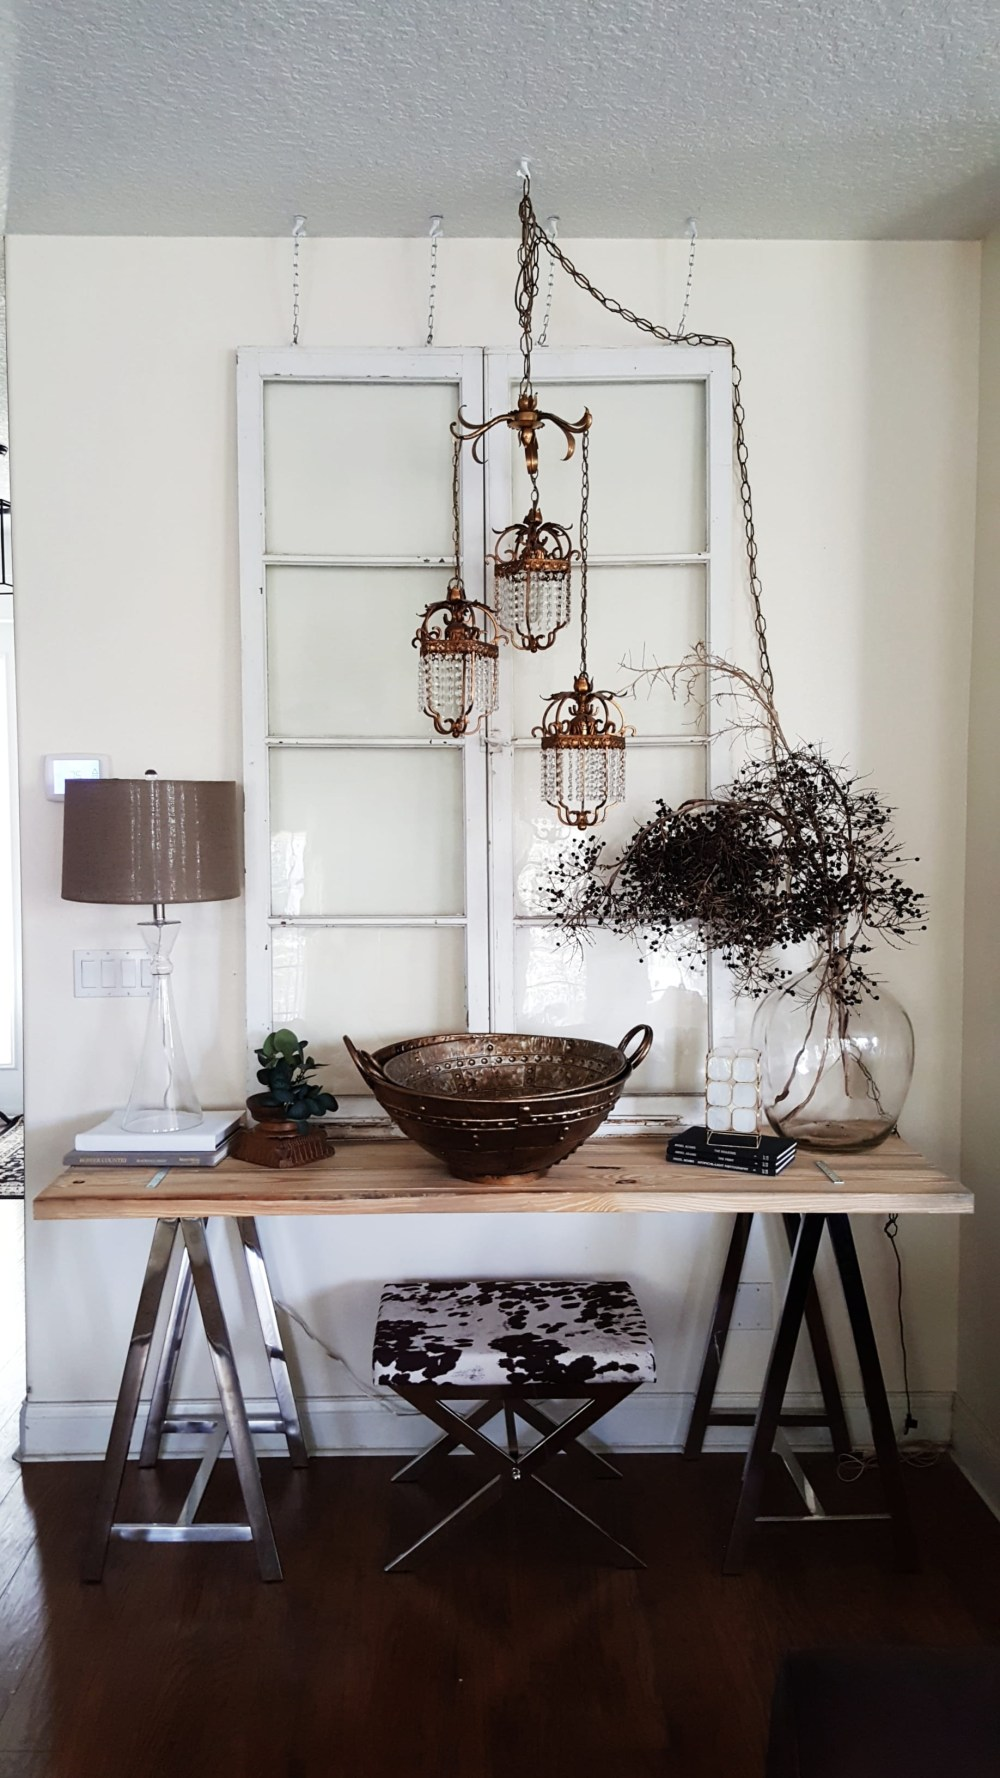 Mid Century Modern Eclectic Vintage Industrial decor design inspiration living room makeover furniture home decorating bed bath & beyond black and white decor minimal design metal vase flowers